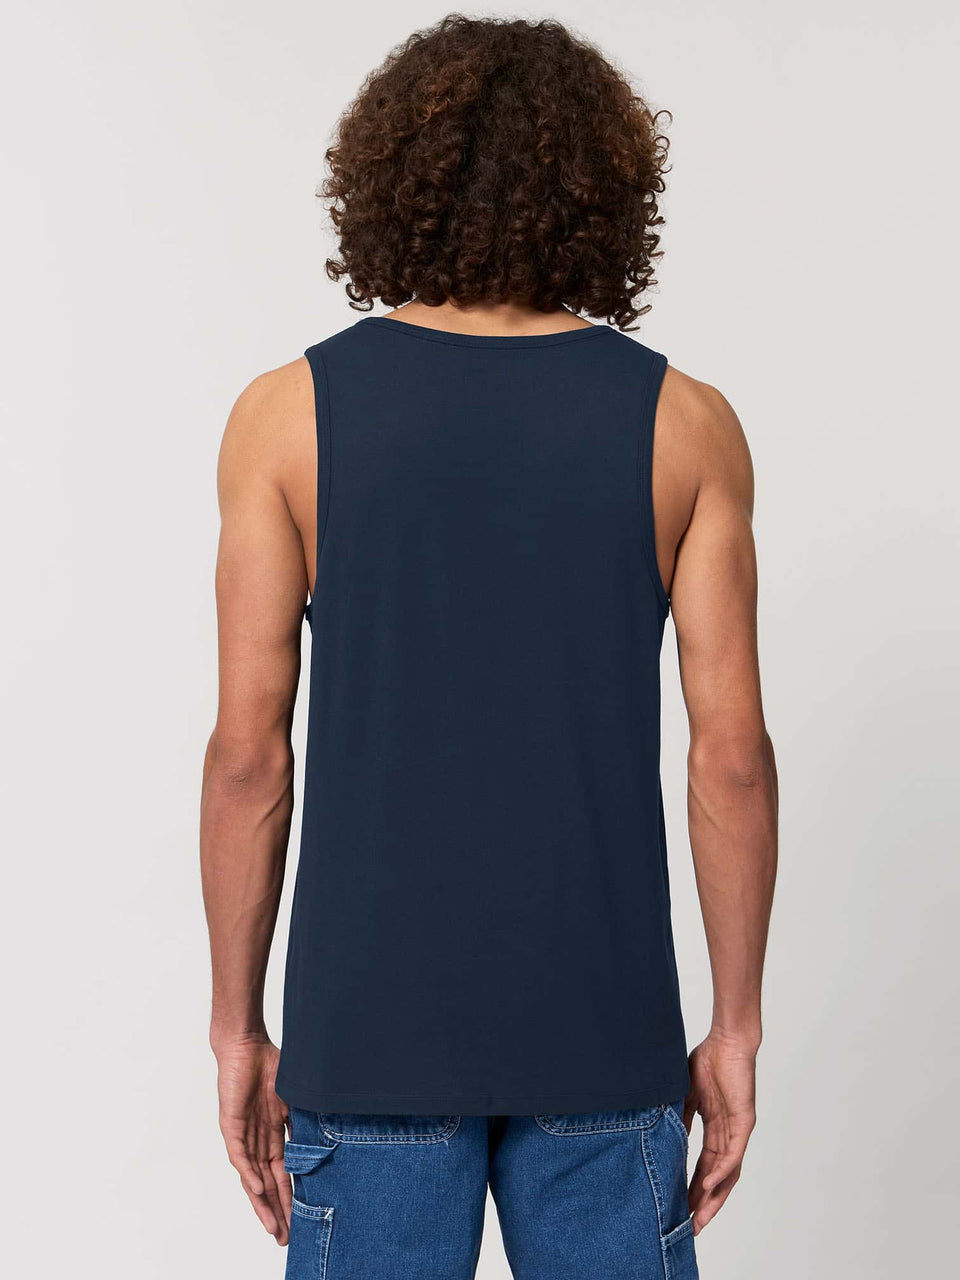 Shipibo Butterfly Made To Order Men Tank Top - Navy Blue